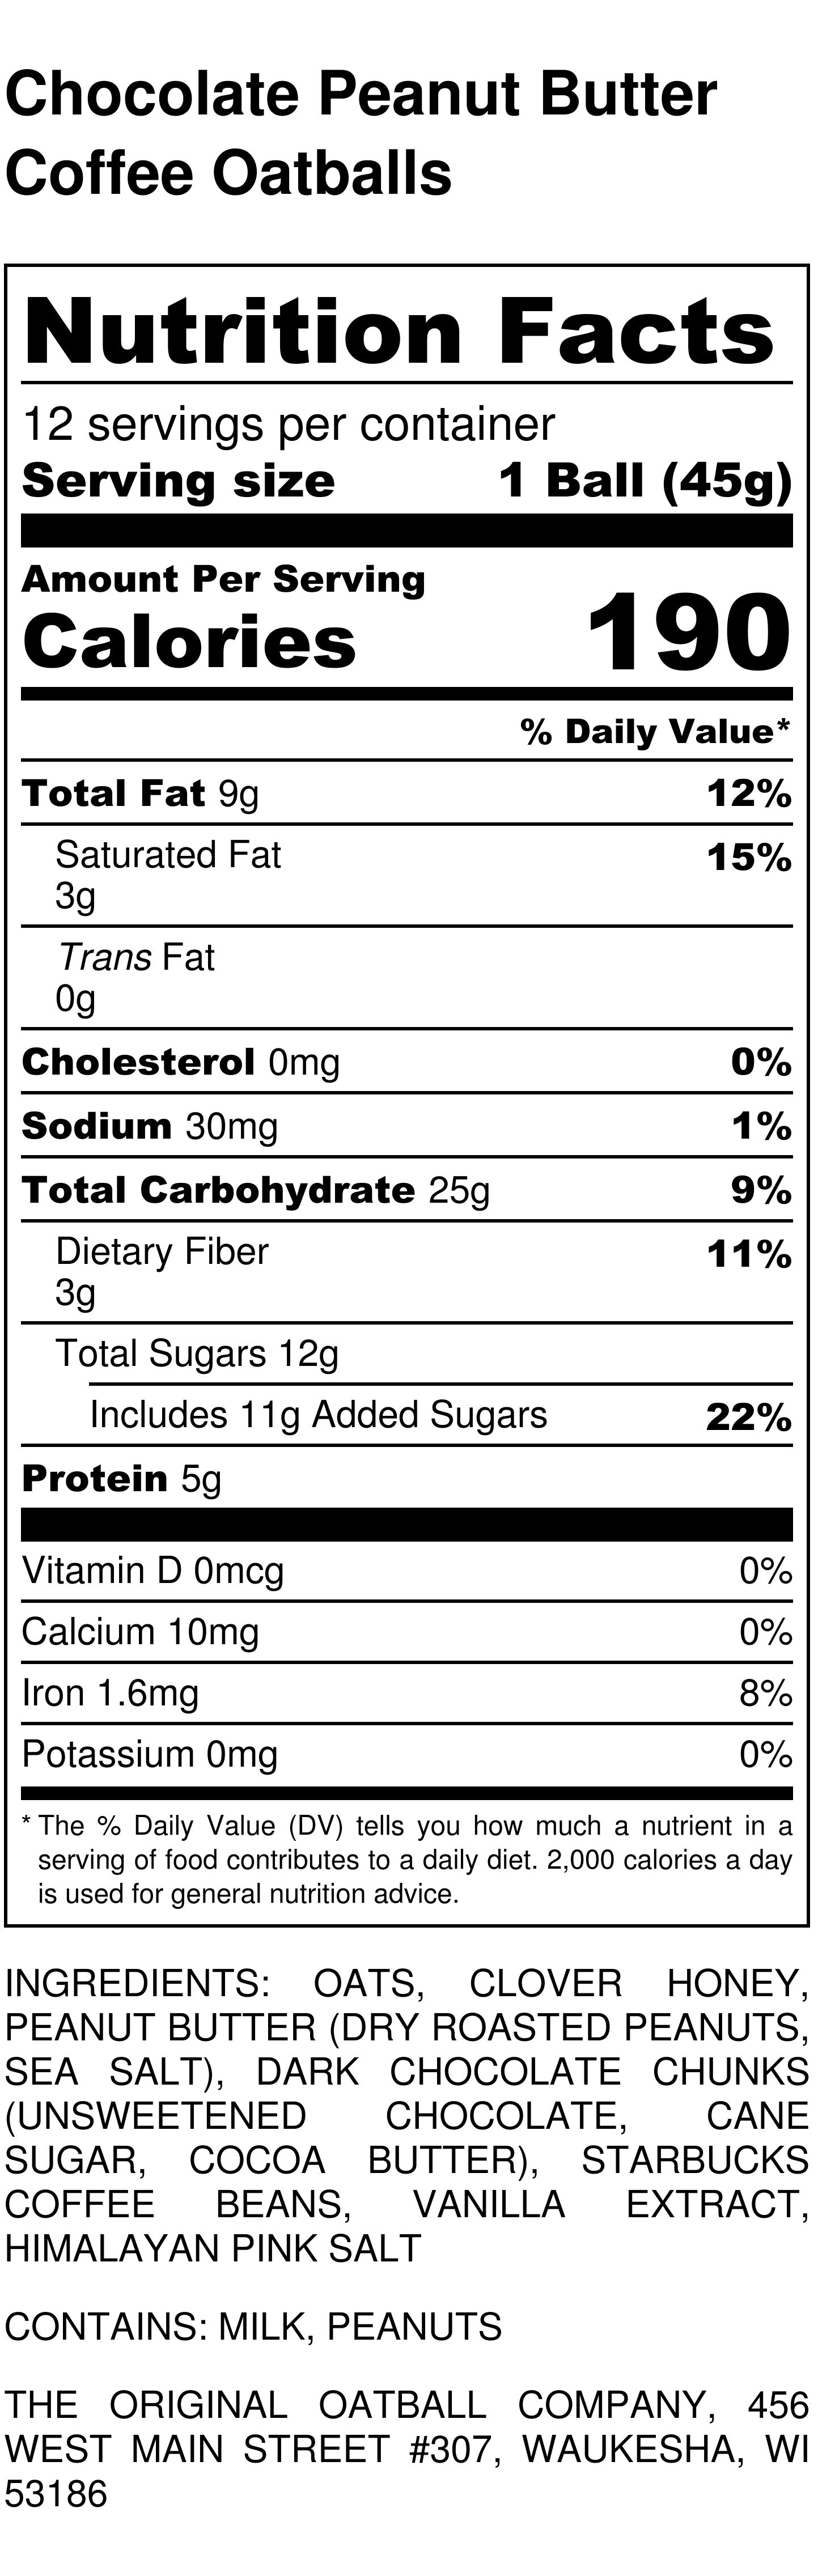 Chocolate Peanut Butter Coffee Oatballs Nutrition Label